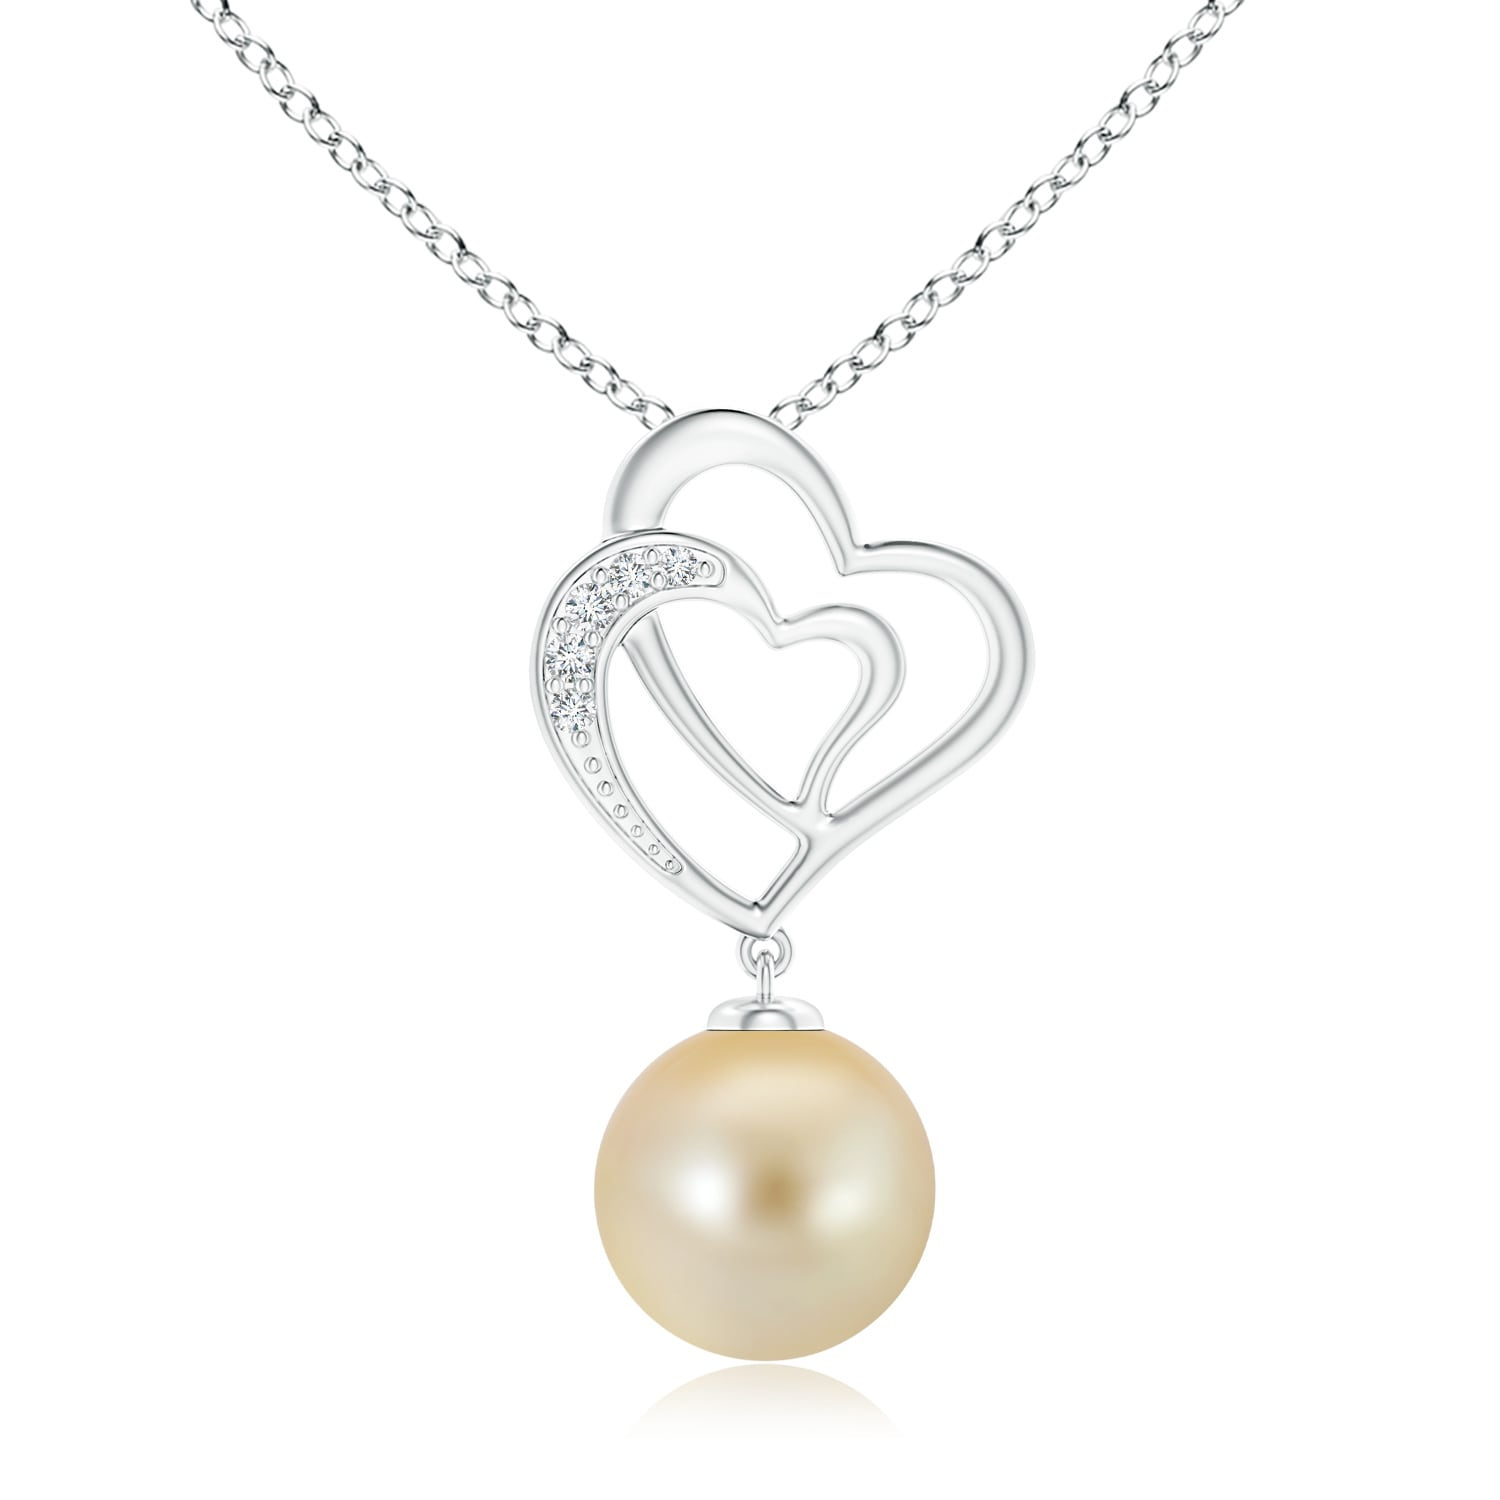 June Birthstone Pendant Necklaces – Golden South Sea Cultured Pearl  Entwined Heart Pendant In 14K White Gold (10Mm Golden South Sea Cultured  Pearl) – Regarding Most Popular Asymmetrical Heart Necklaces (Gallery 9 of 25)